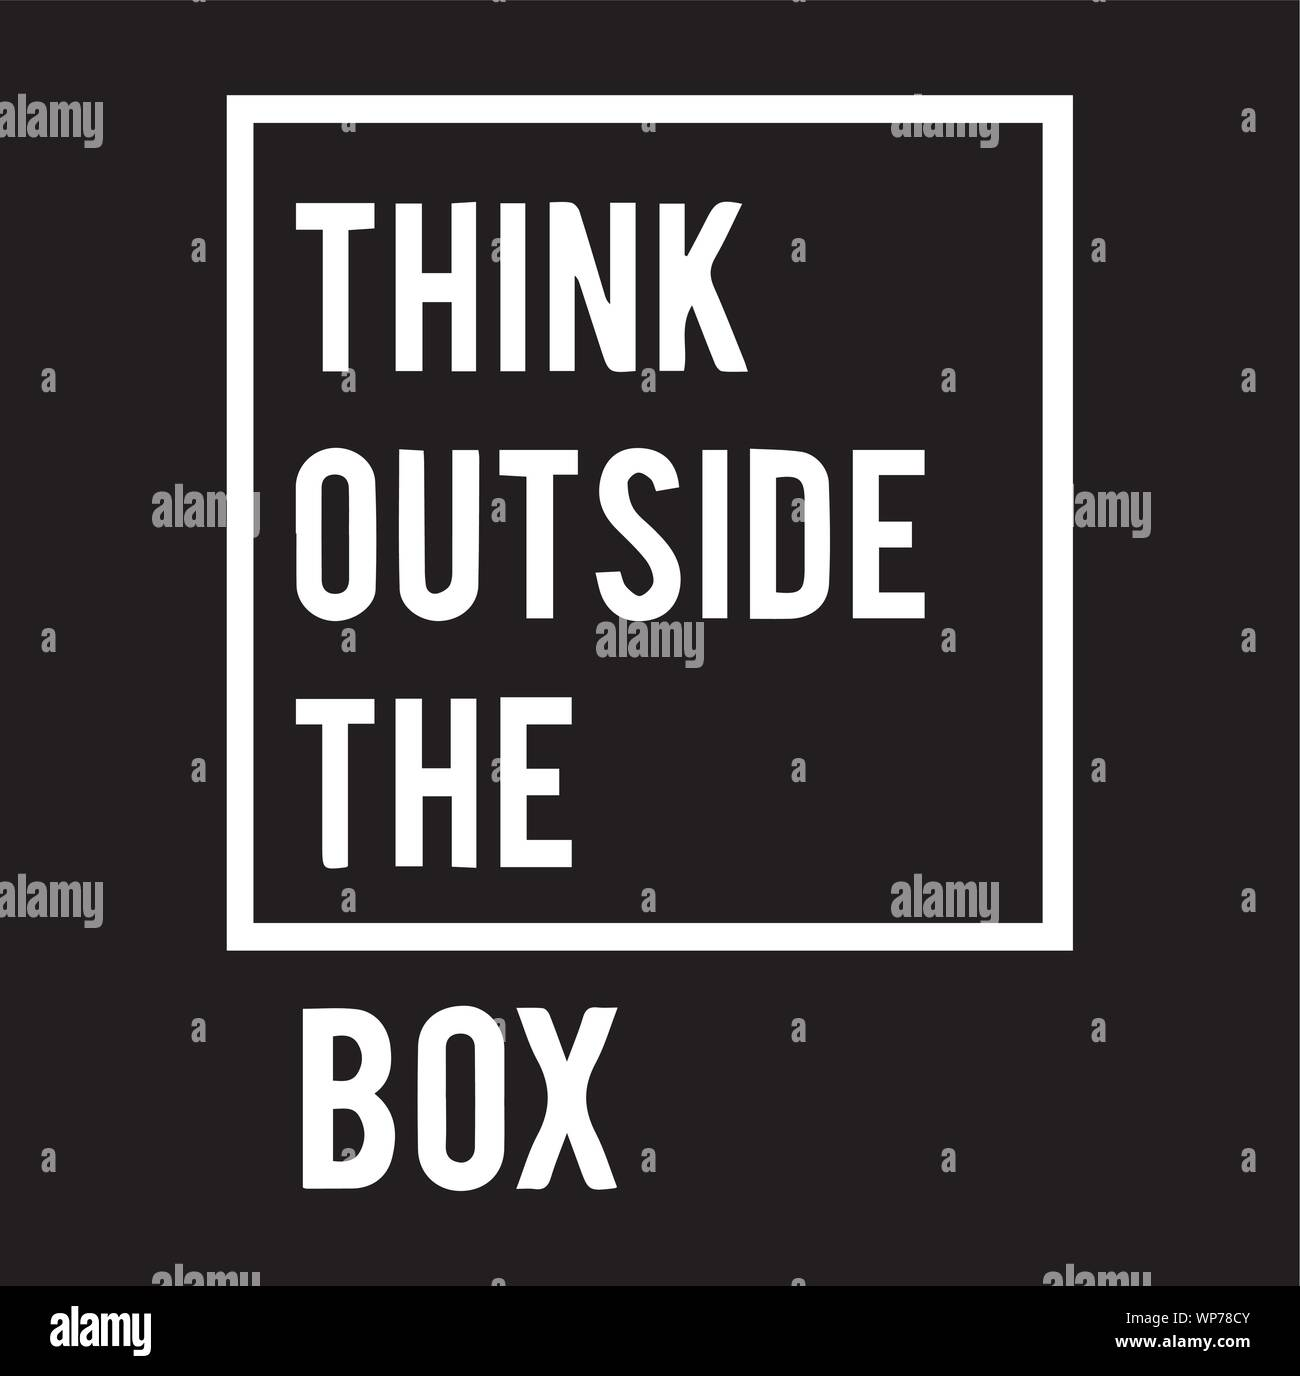 Think Outside The Box Inspirational Quotes And Motivational Typography Art Lettering Composition Vector Stock Vector Image Art Alamy